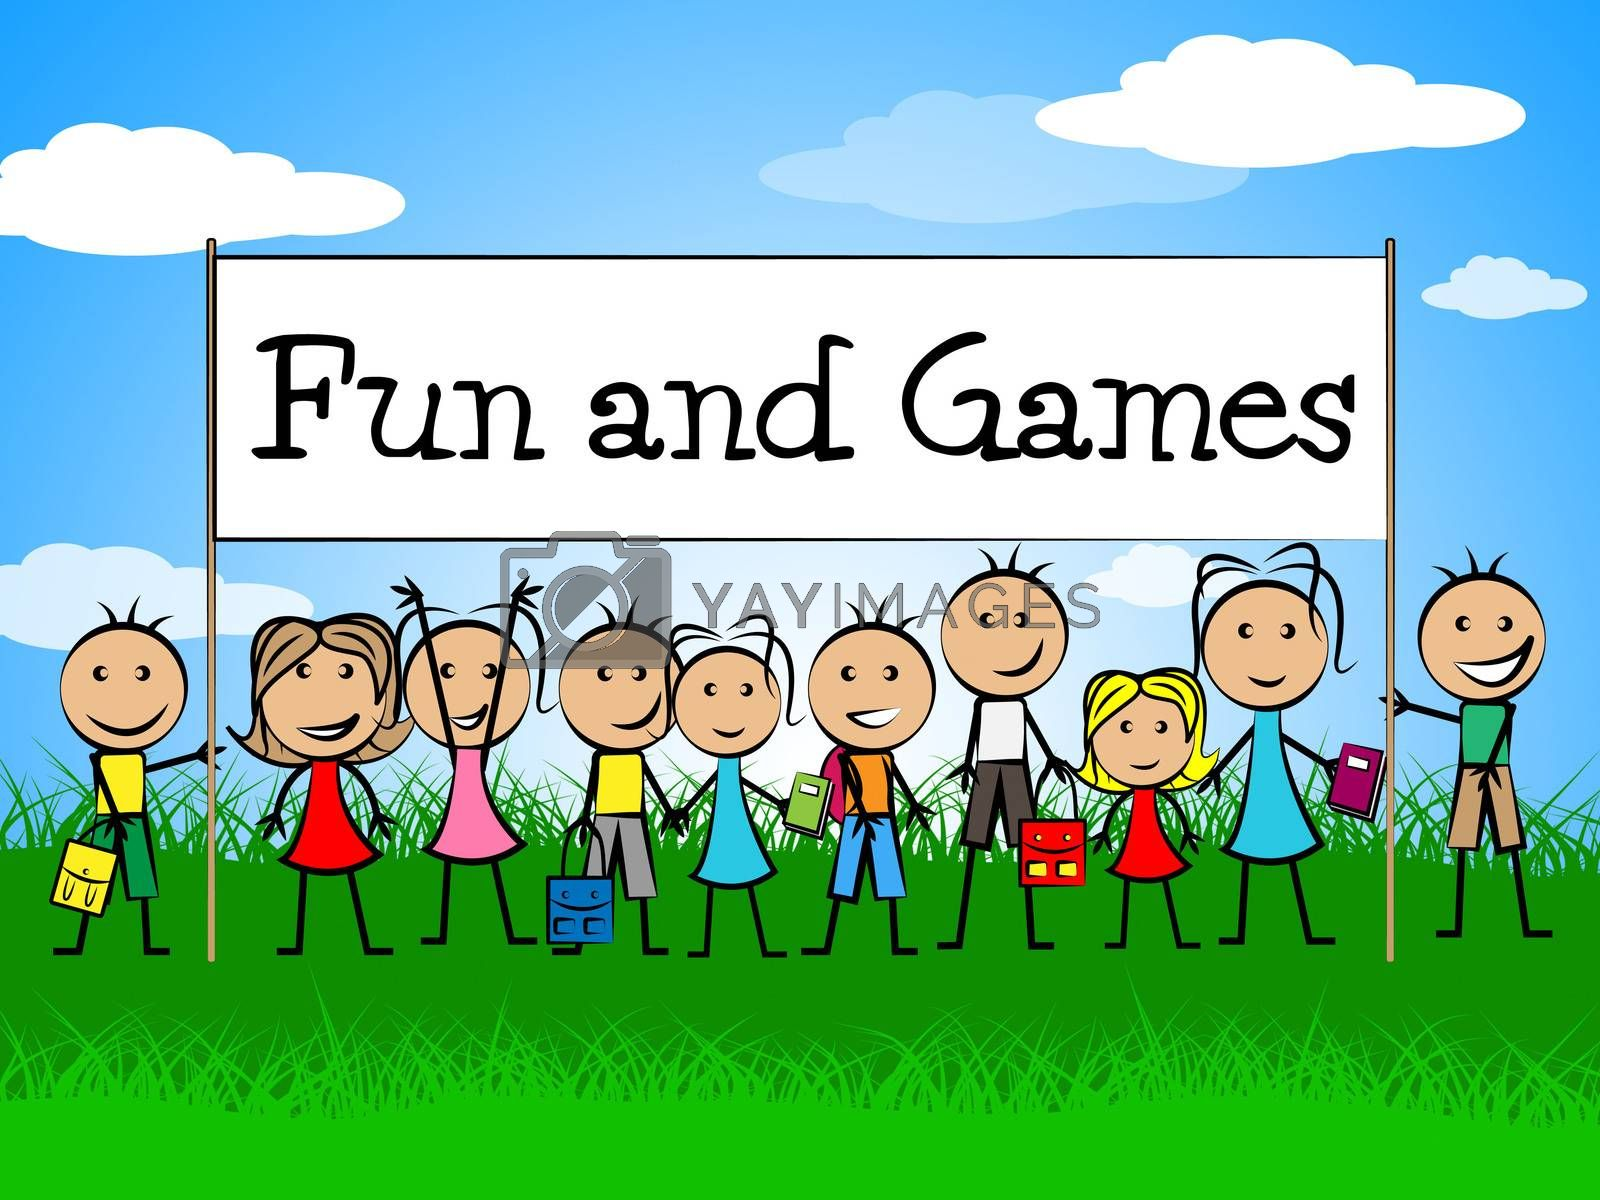 Fun And Games Indicates Gamer Recreational And Recreation by stuartmiles